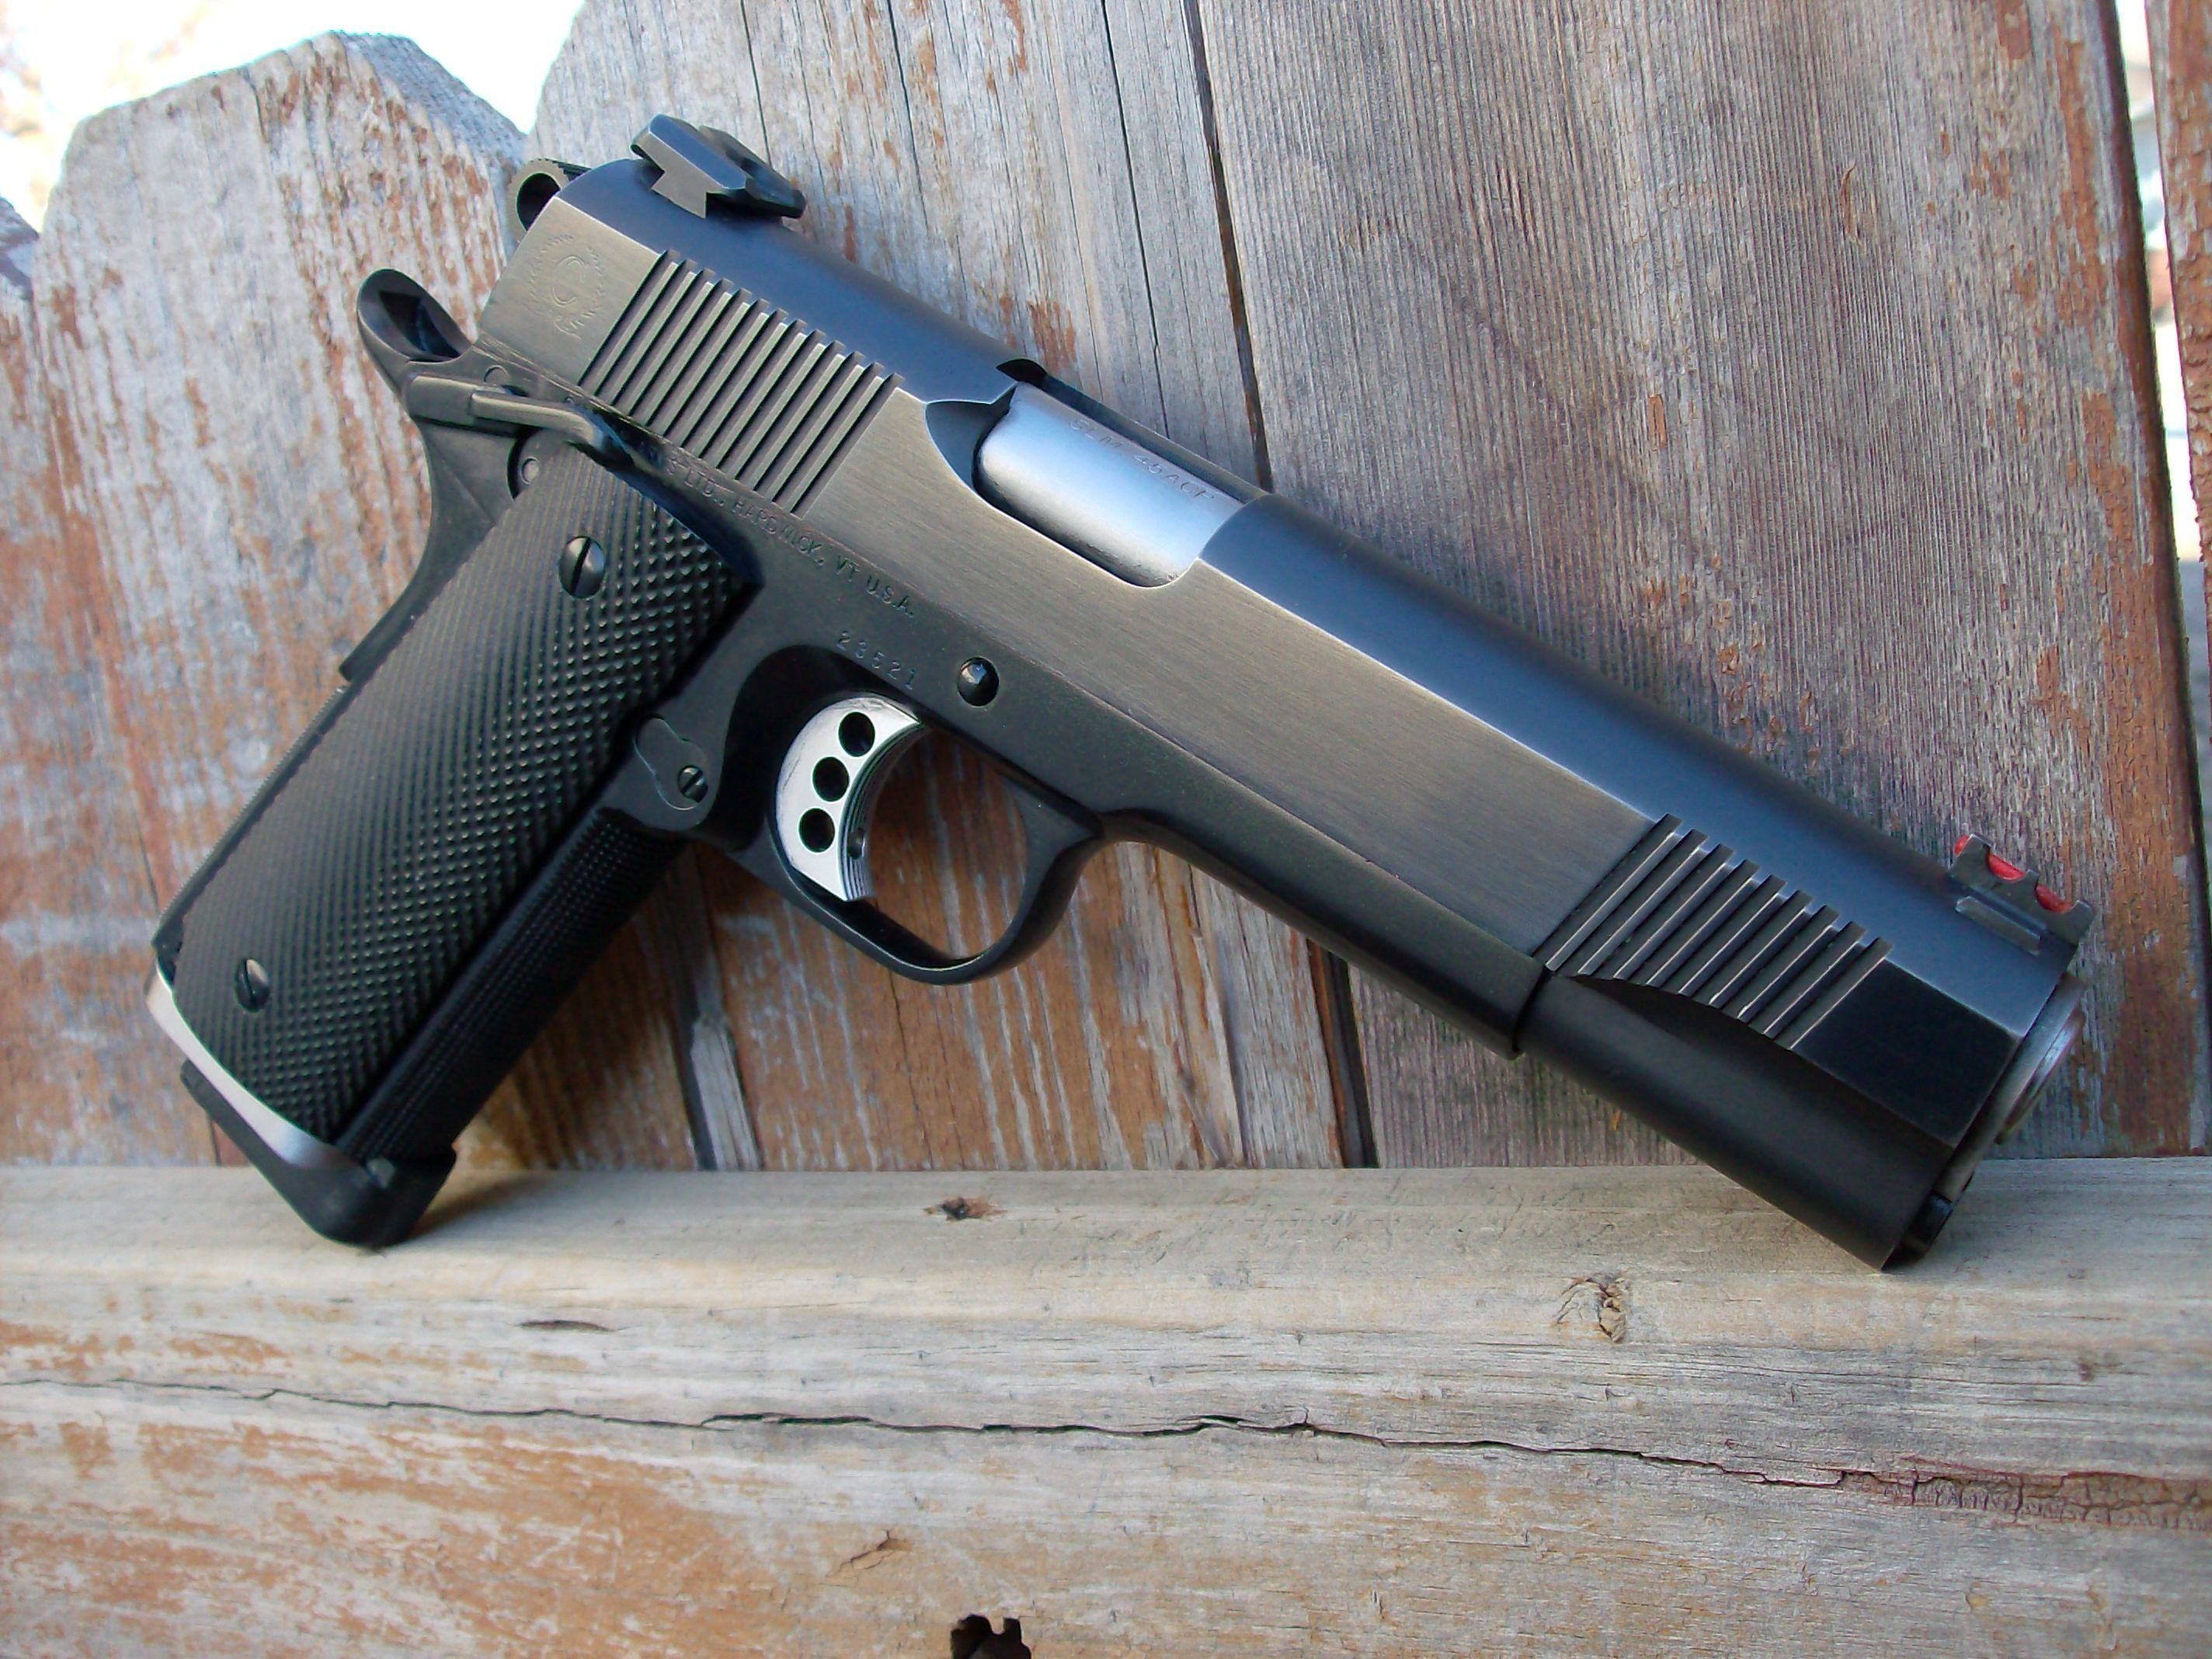 2848x2136 Colt 1911 Pistol Computer Wallpapers, Desktop Backgrounds |  .